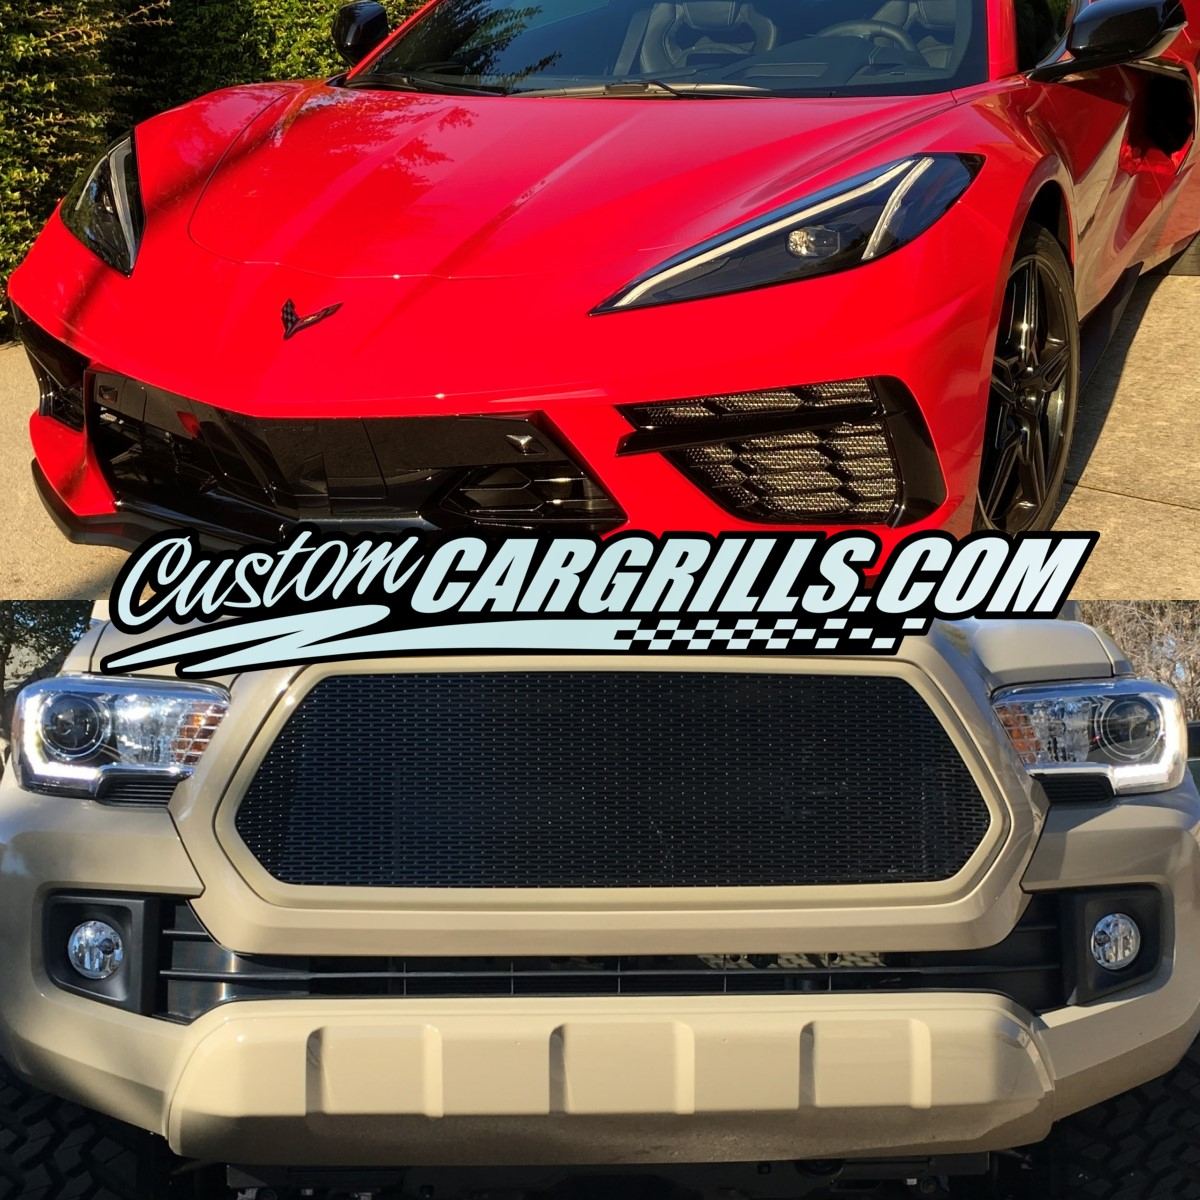 Small Car Grills : Customcargrills custom car and truck grills mesh